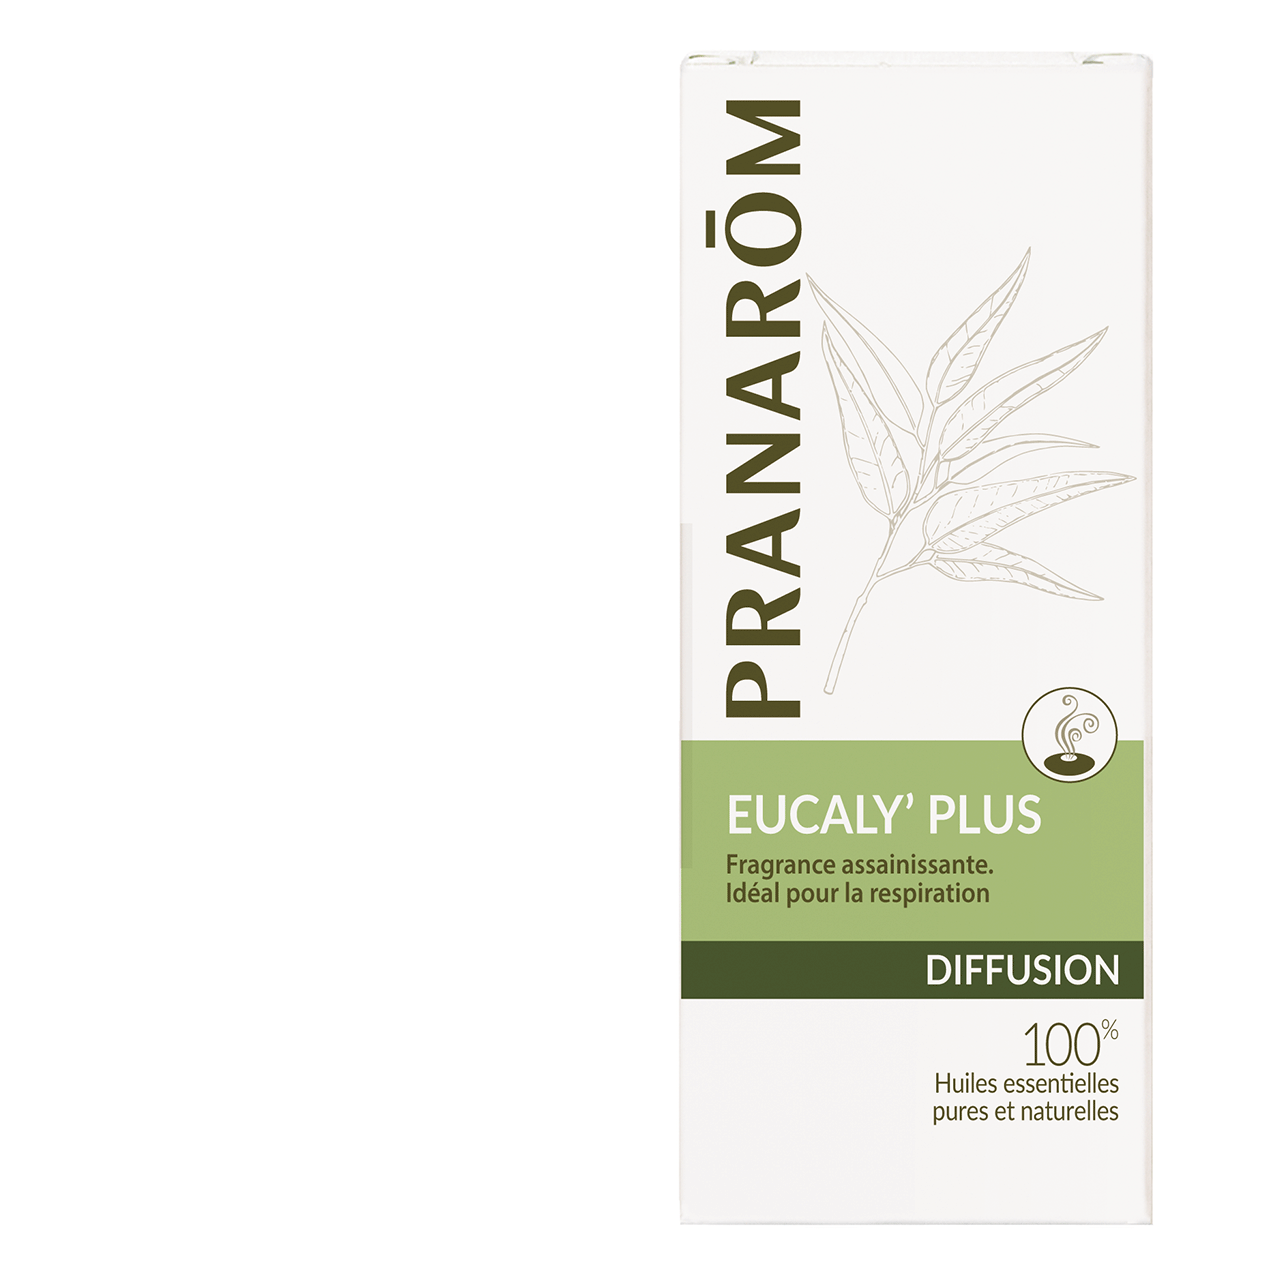 eucaly&#039plus--100-pure-and-natural-essential-oils-for-diffusing